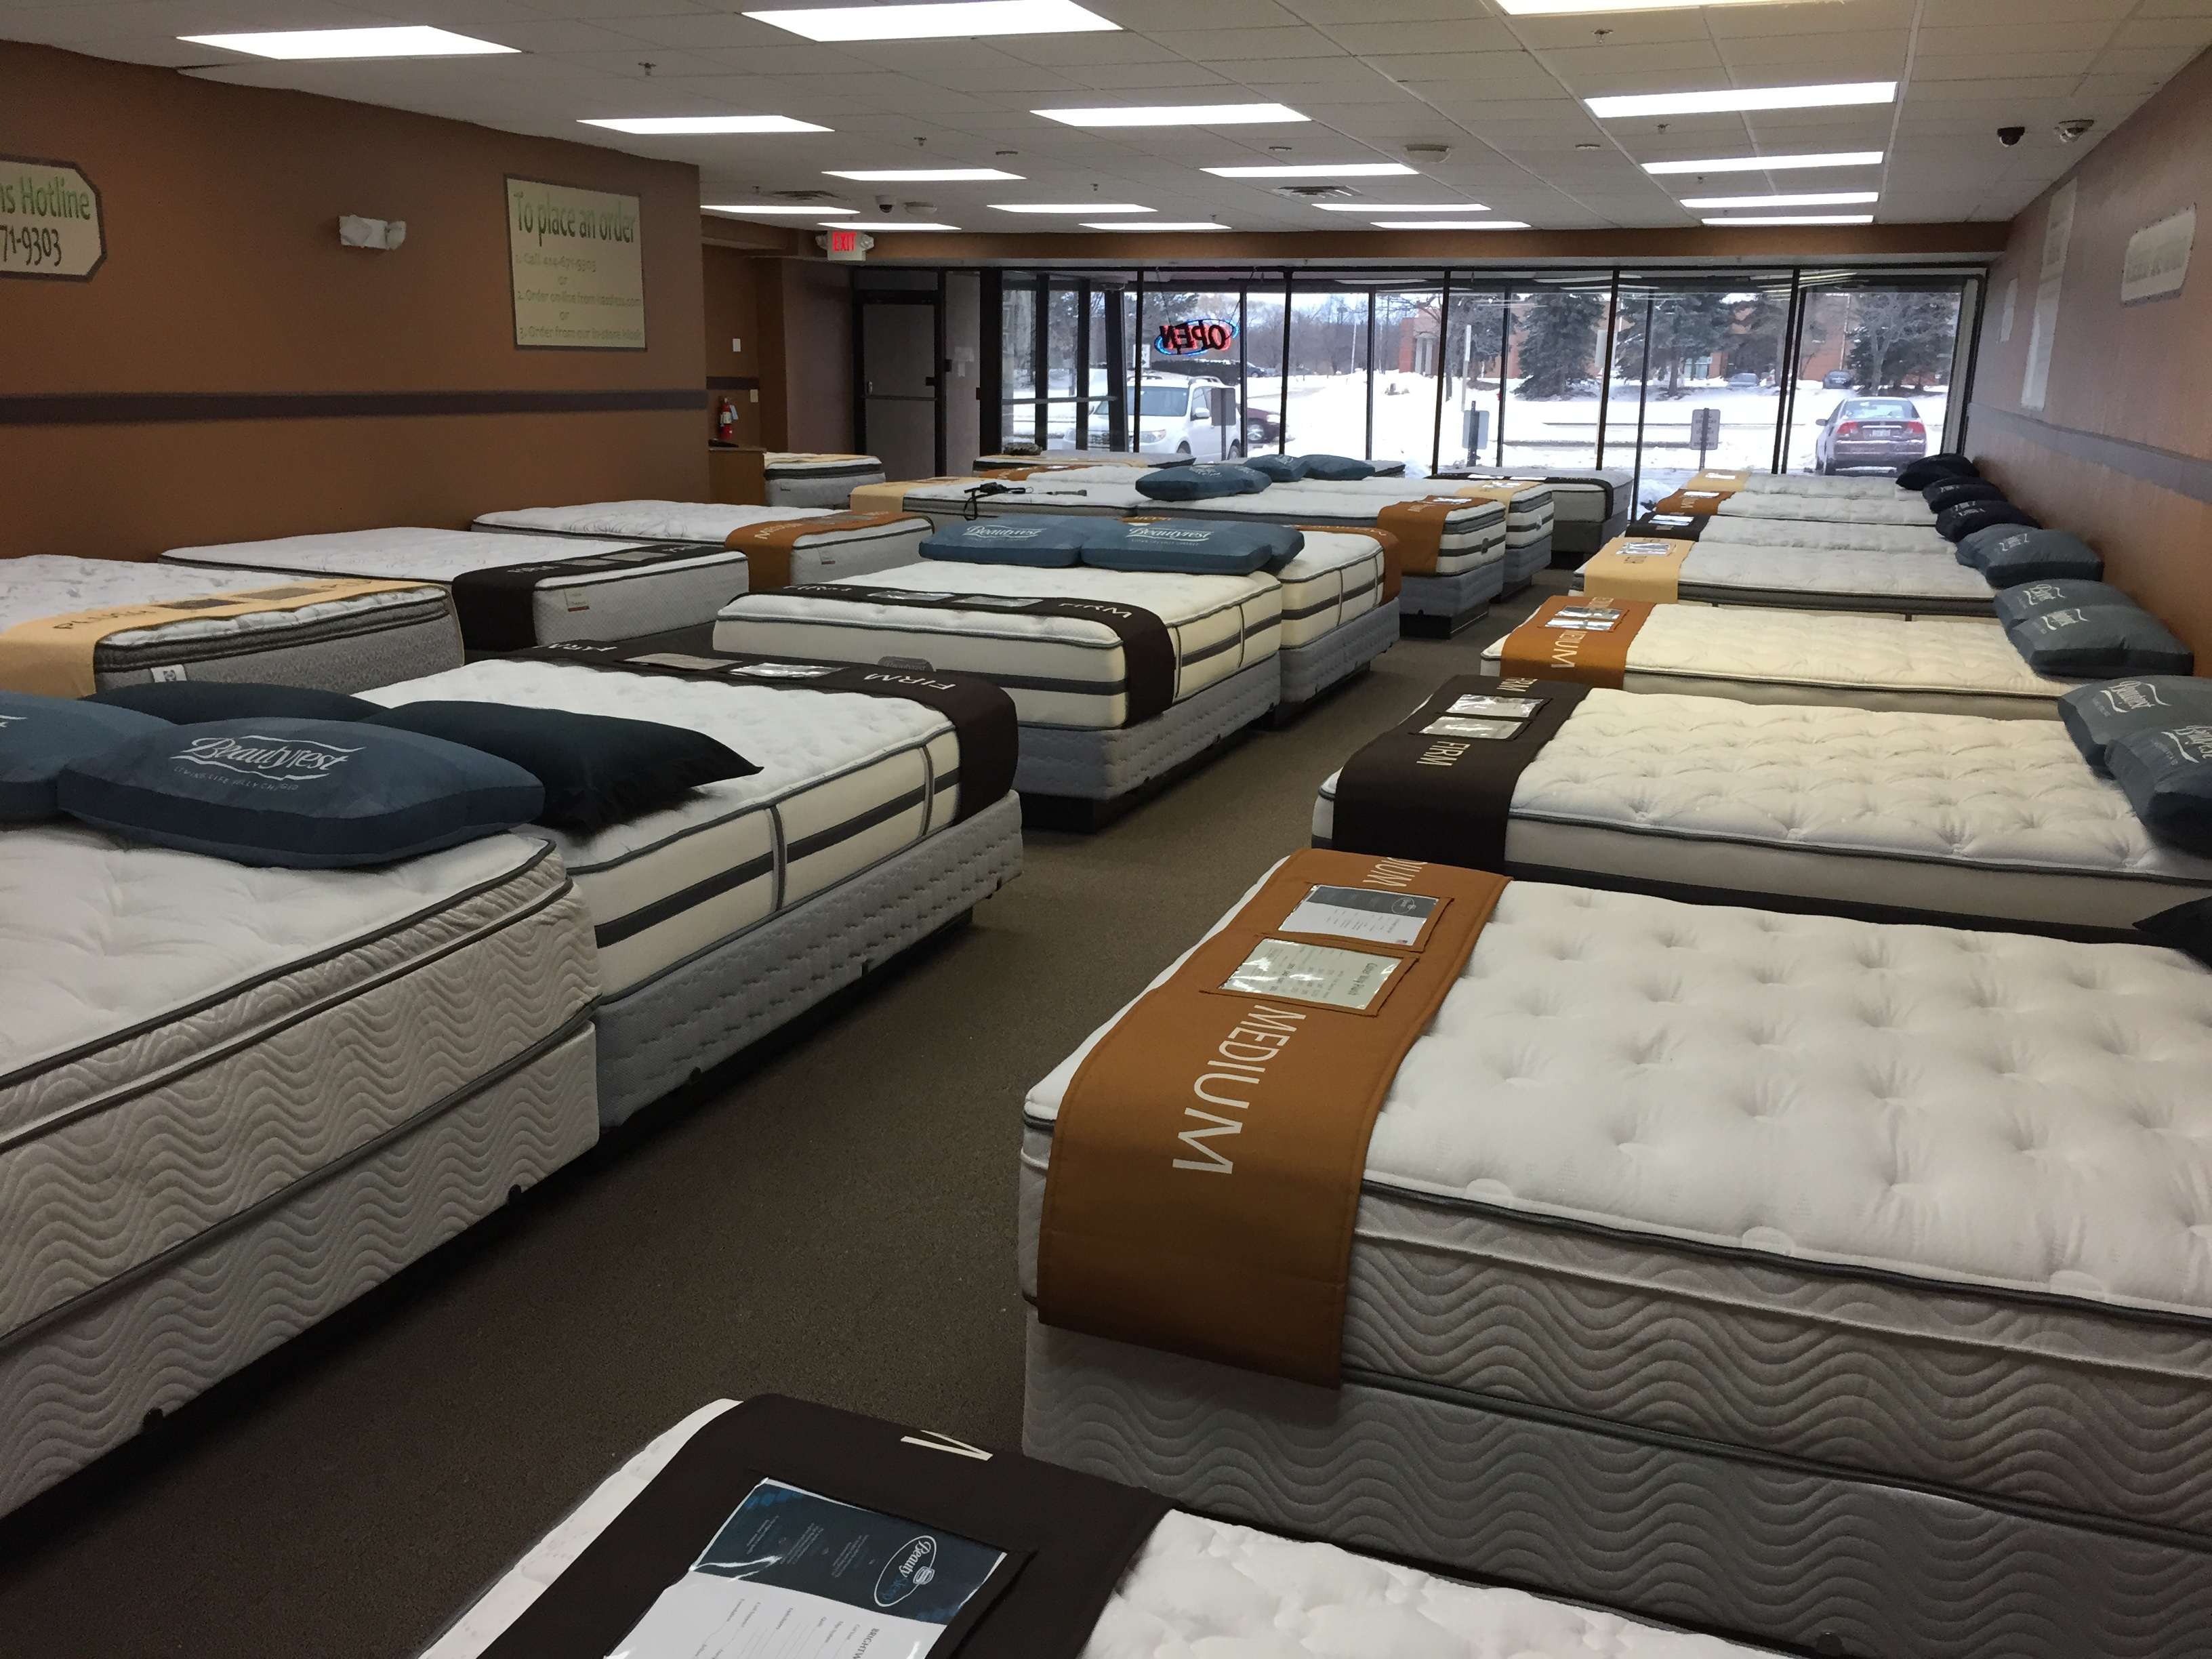 Milwaukee area mattress store tries employee free for Online shopping for mattress